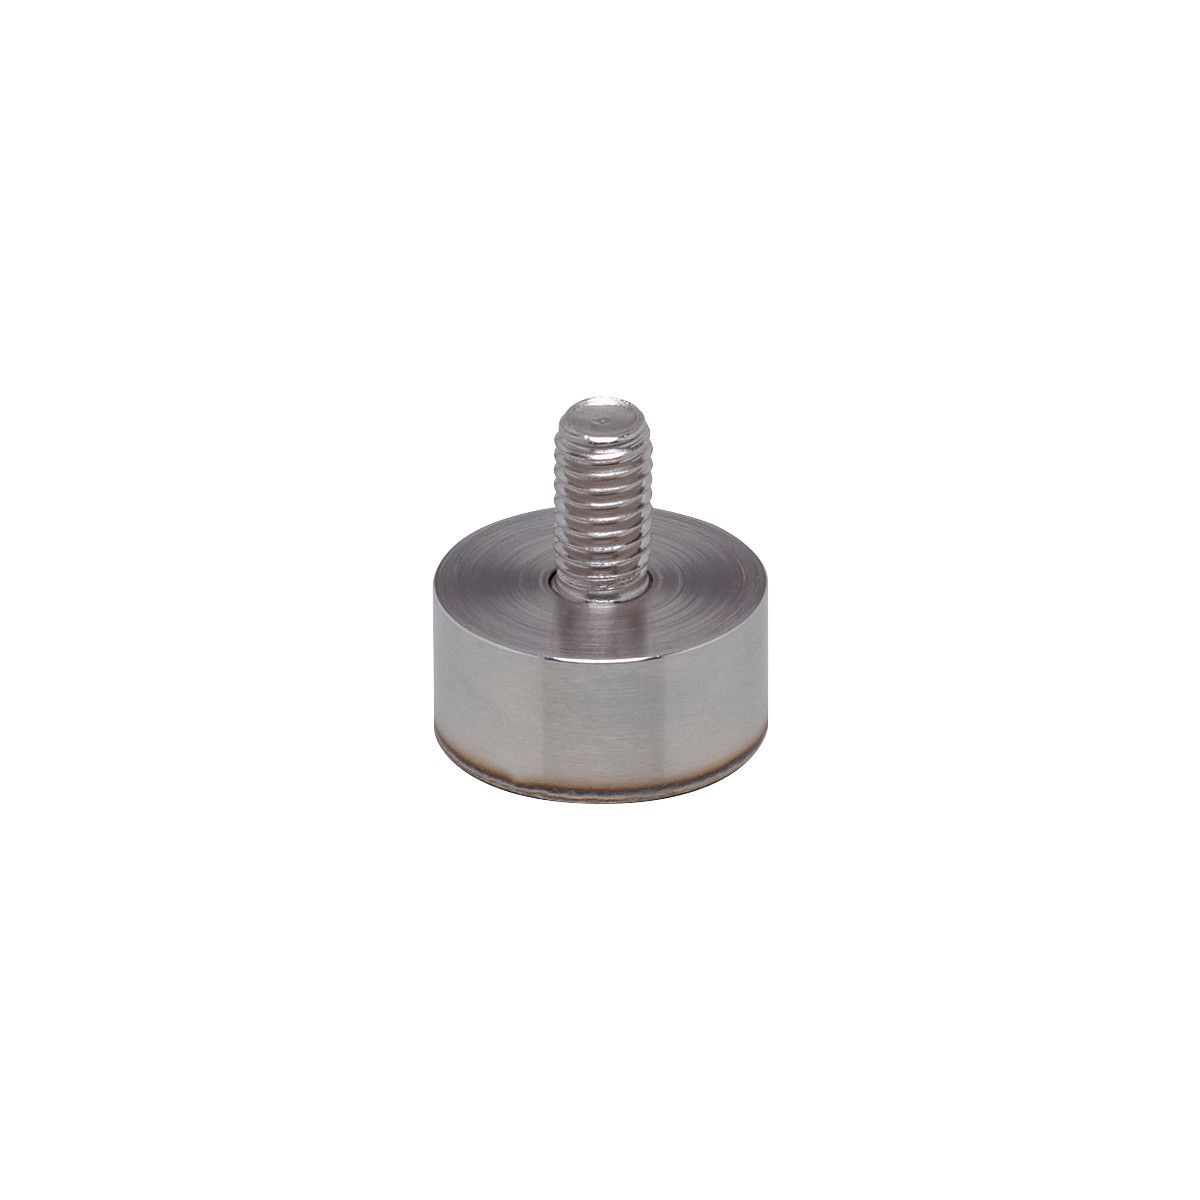 MAGNET M3.1/BARIUM F.STAINLESS,  MAGNET M3.1/BARIUM F.STAINLESS